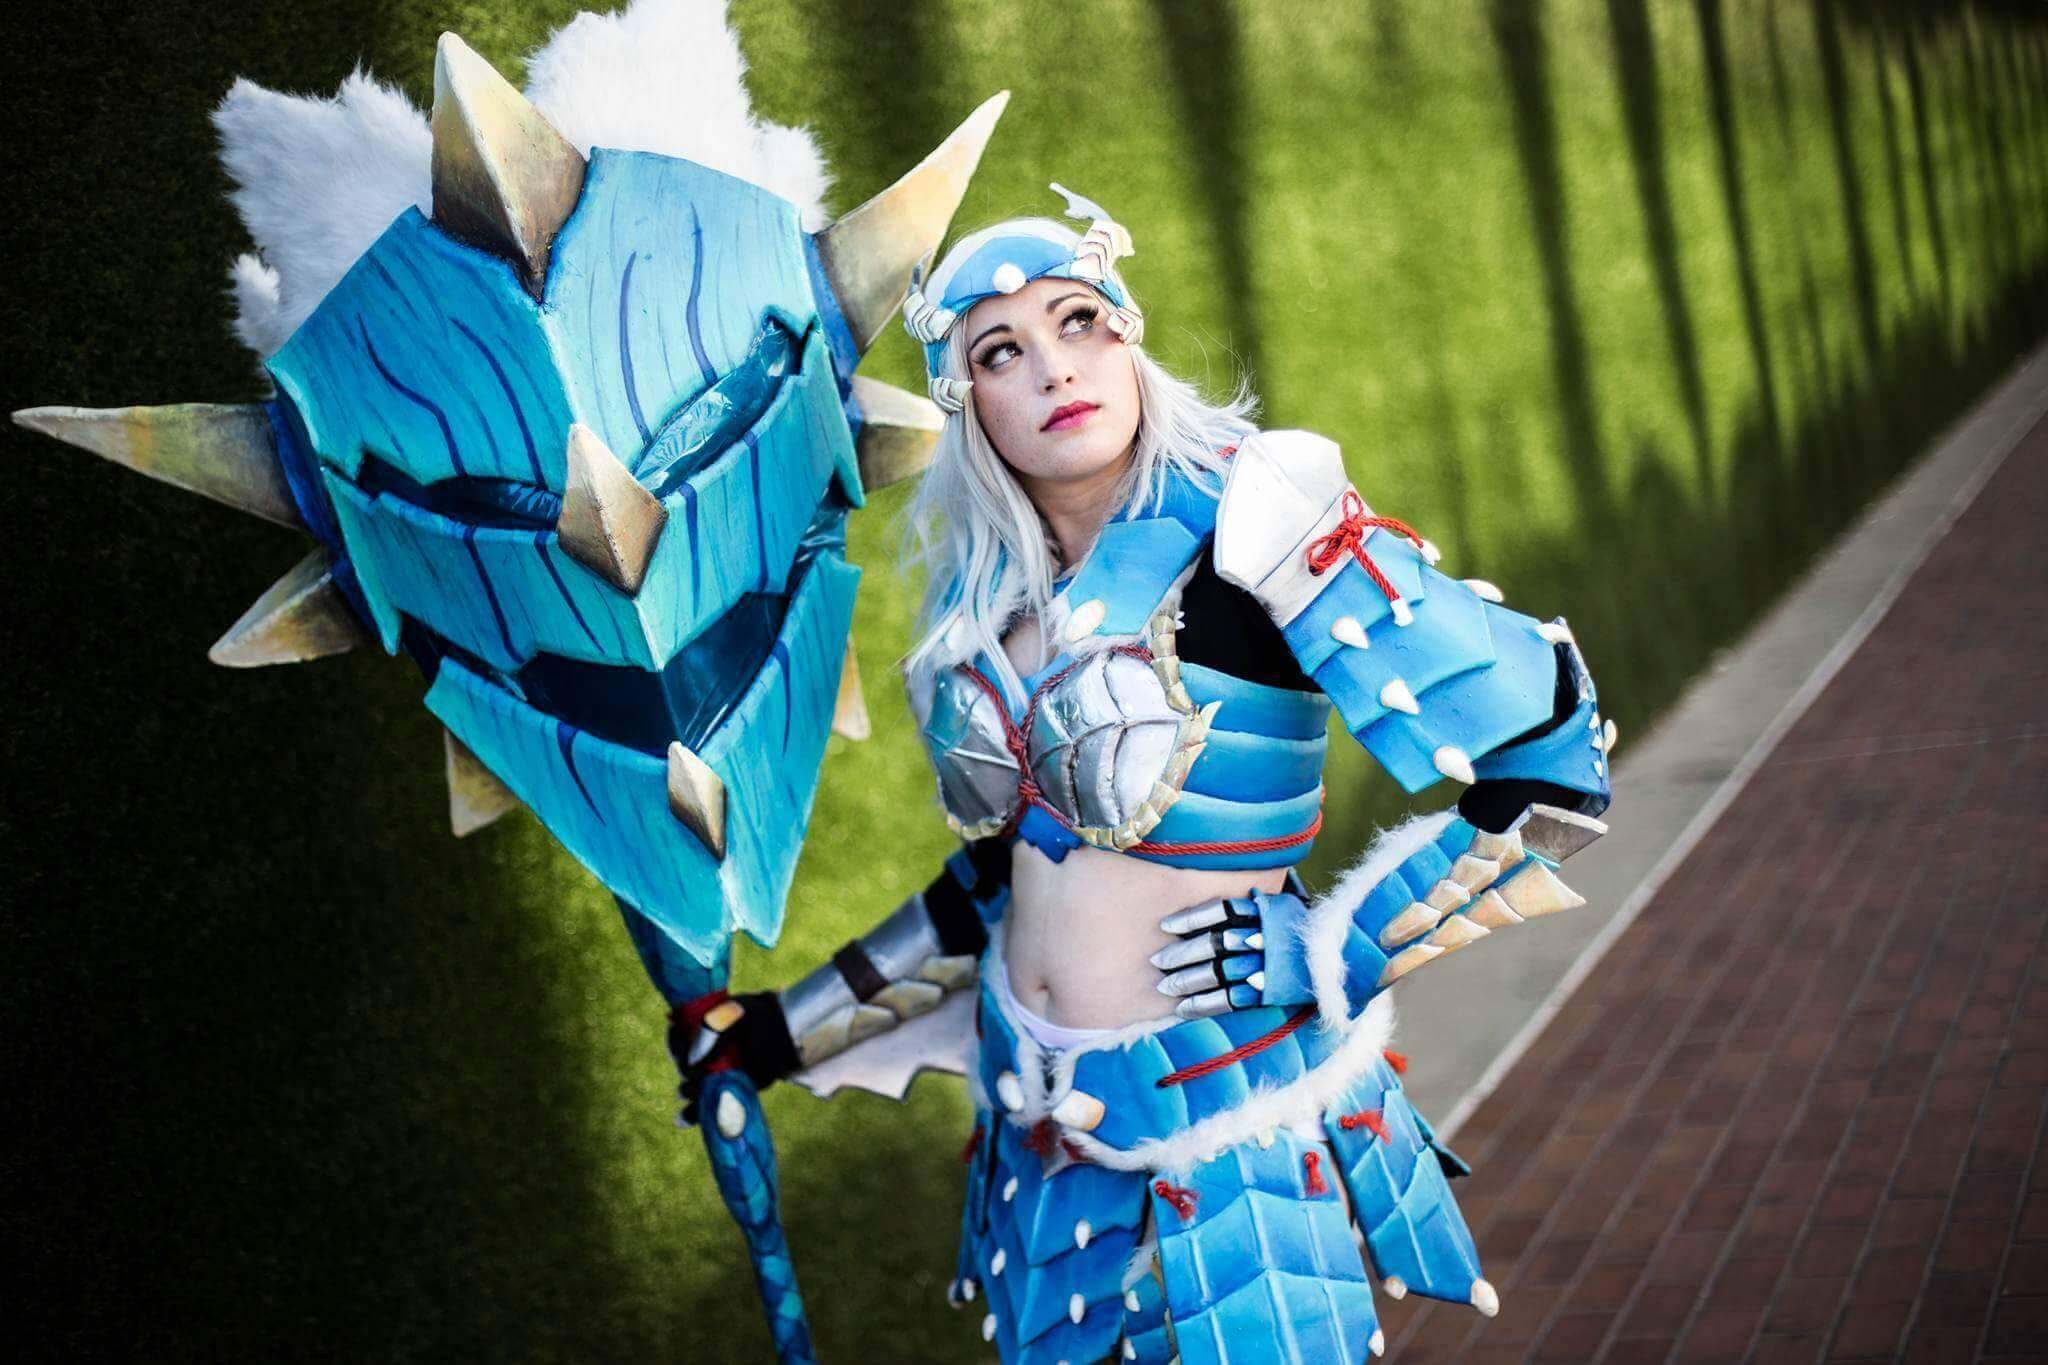 KEM Cosplay as Monster Hunter 3 Zinogre Armor